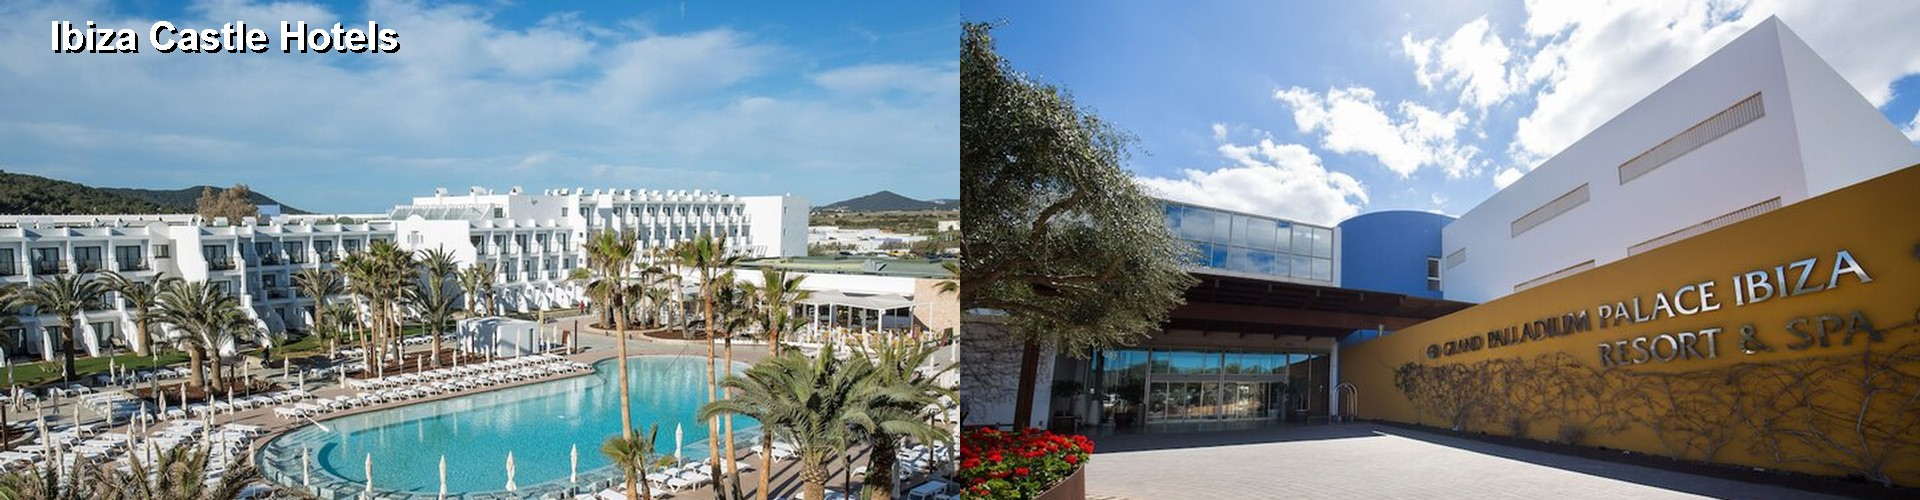 5 Best Hotels near Ibiza Castle